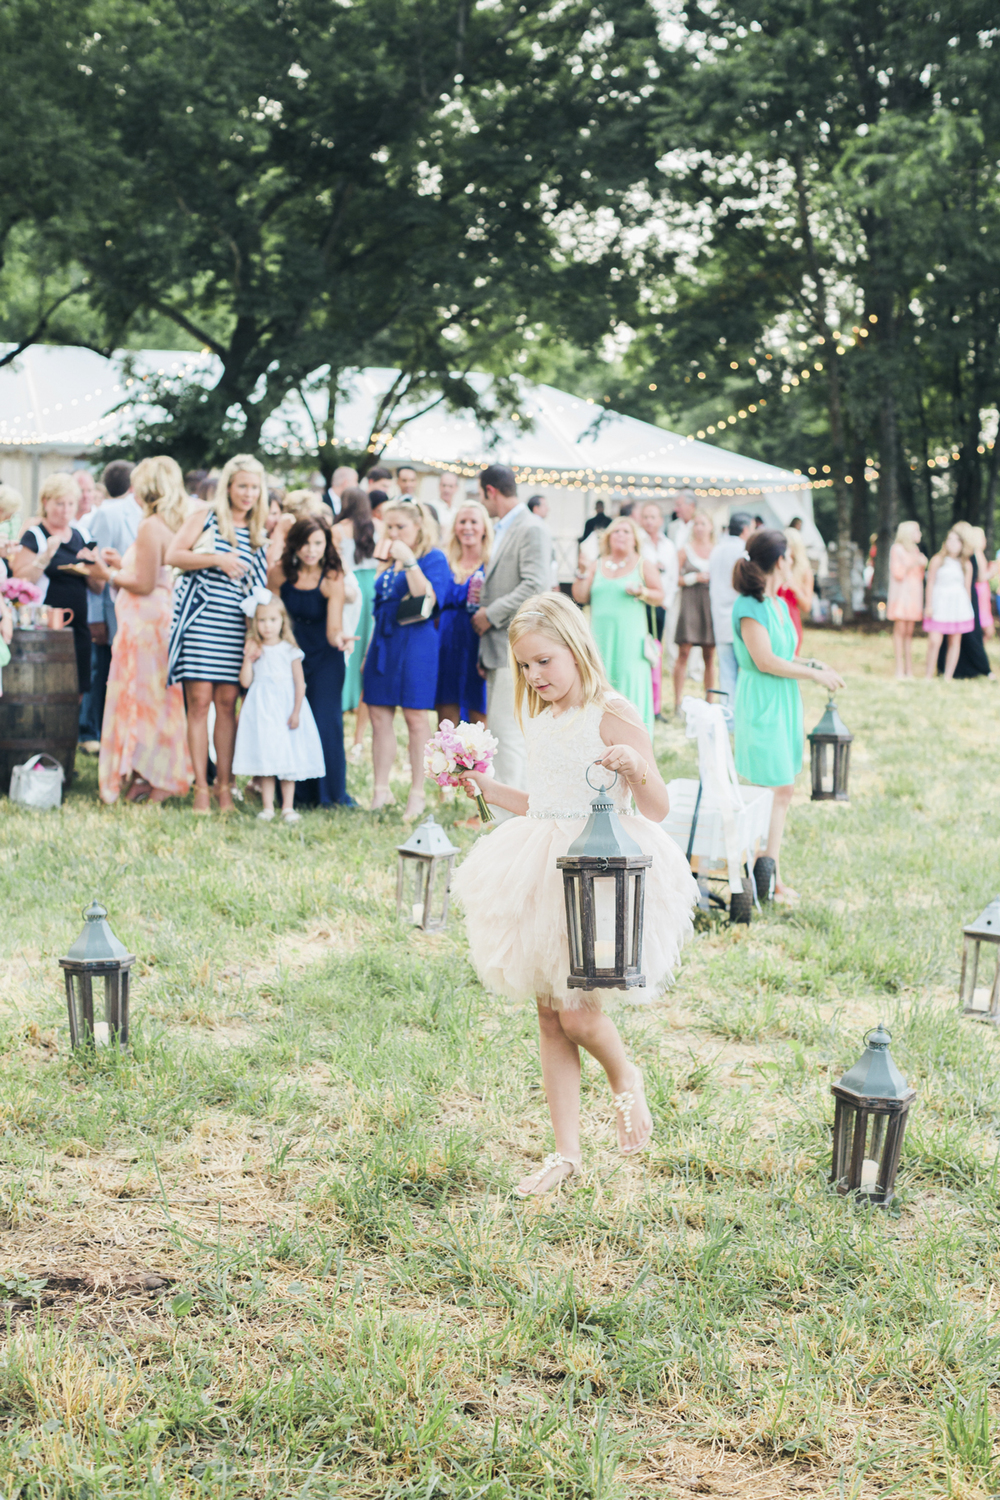 south_carolina_farm_wedding_rustic_chic_surprise_secret_luxe_wedding_bachelorette_emily_maynard_real_weddings-27.jpg